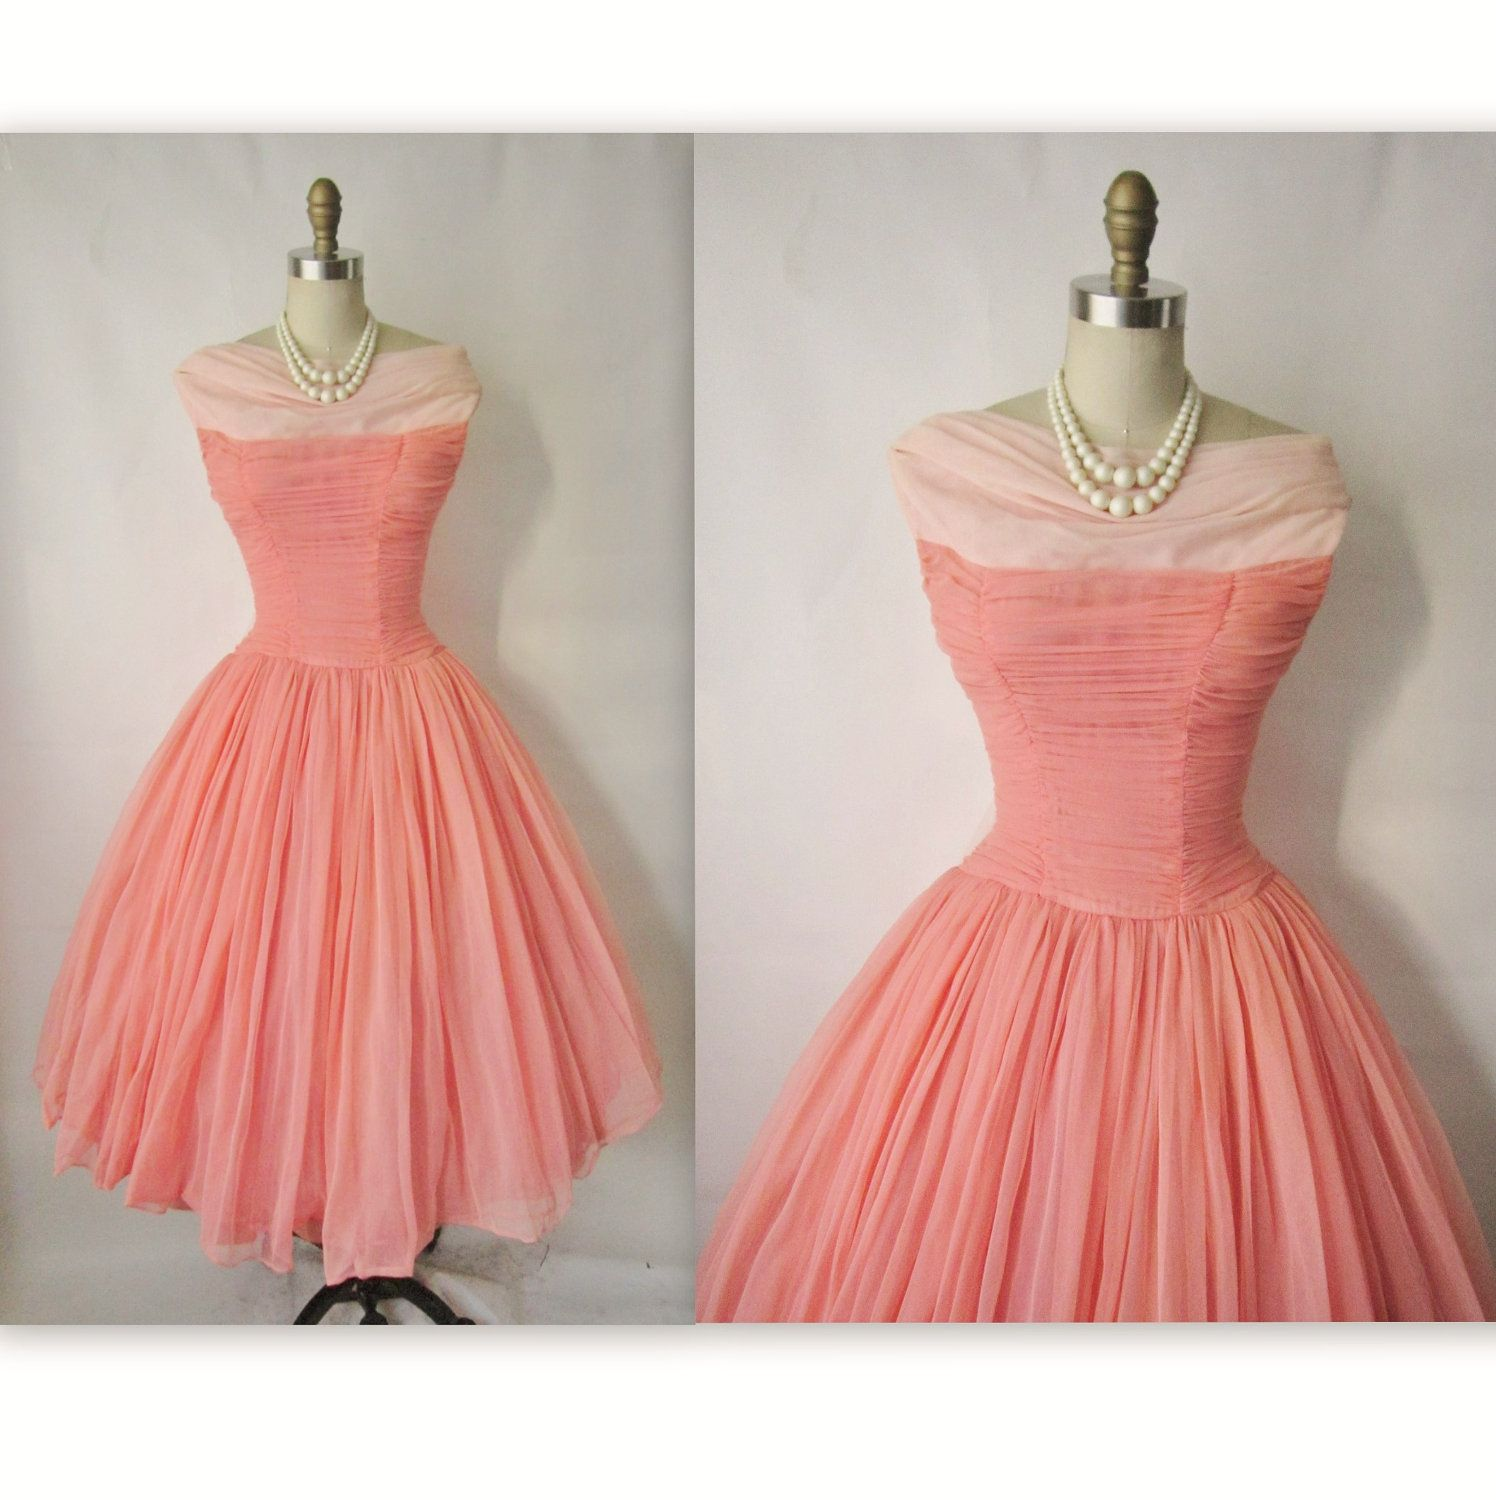 50s prom dress vintage 1950s ruched coral by thevintagestudio 50 s prom dress vintage 1950 ruched coral chiffon wedding party ombrellifo Images